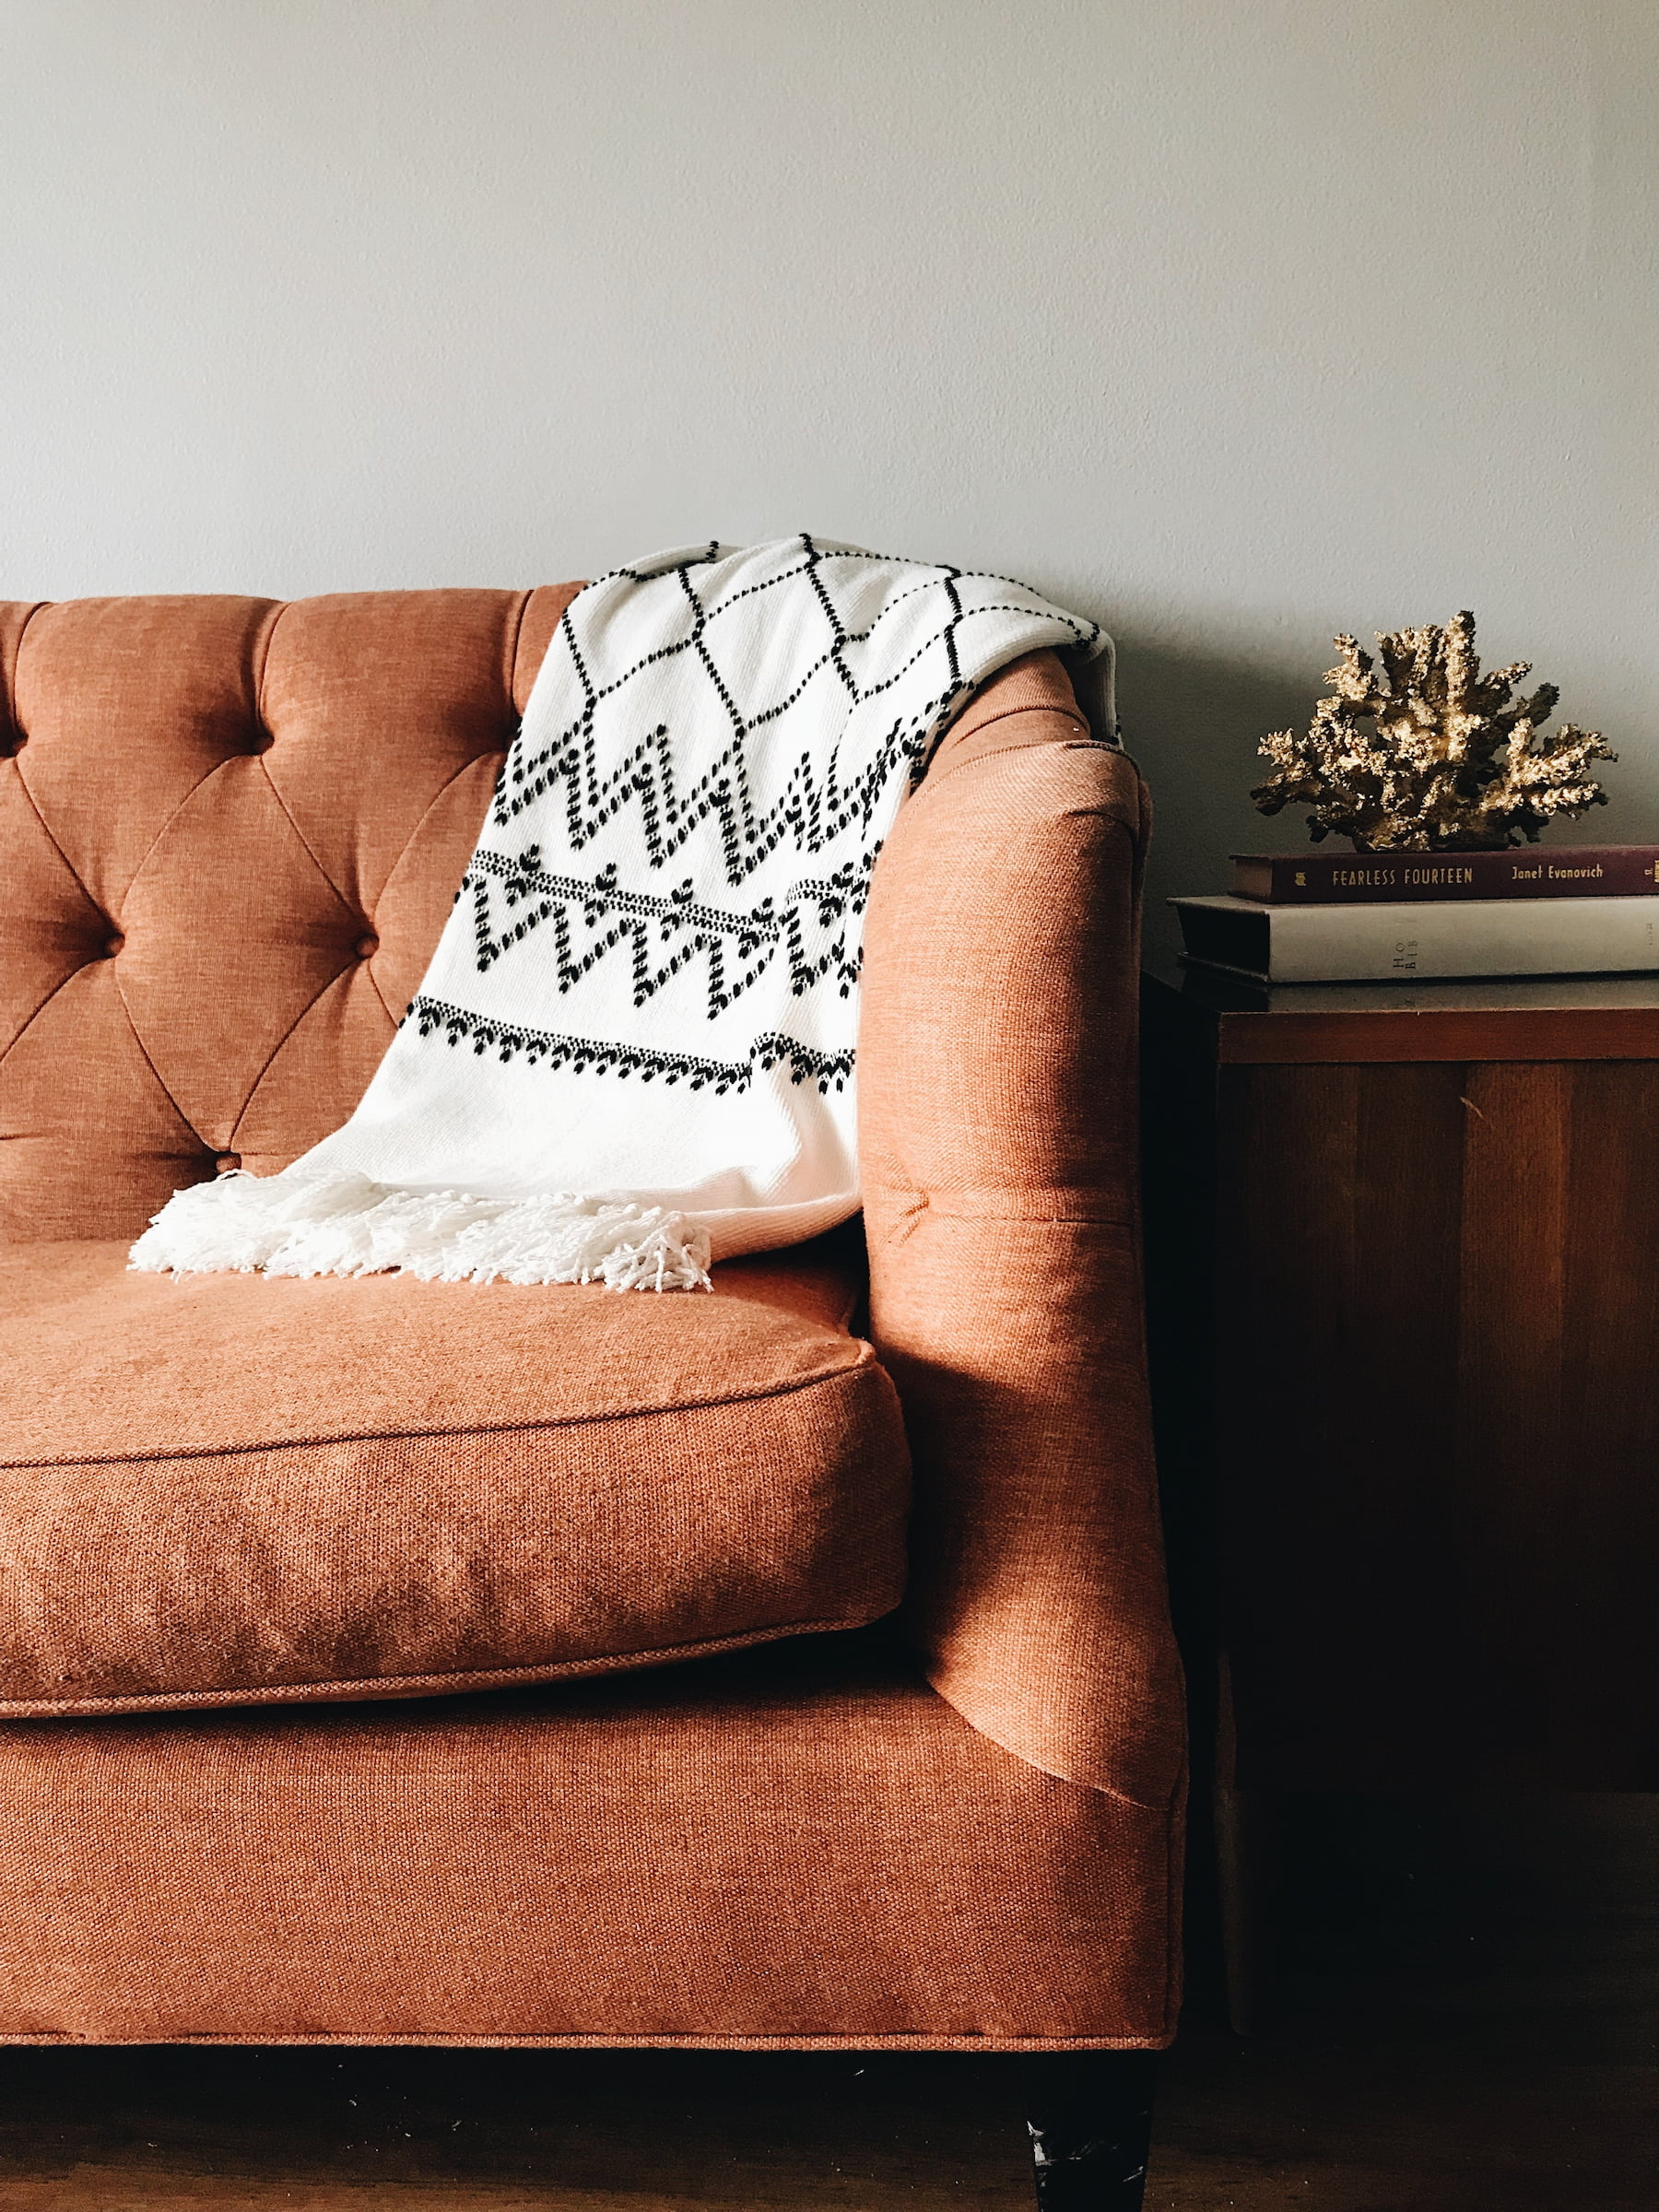 Sofa with blanket and table